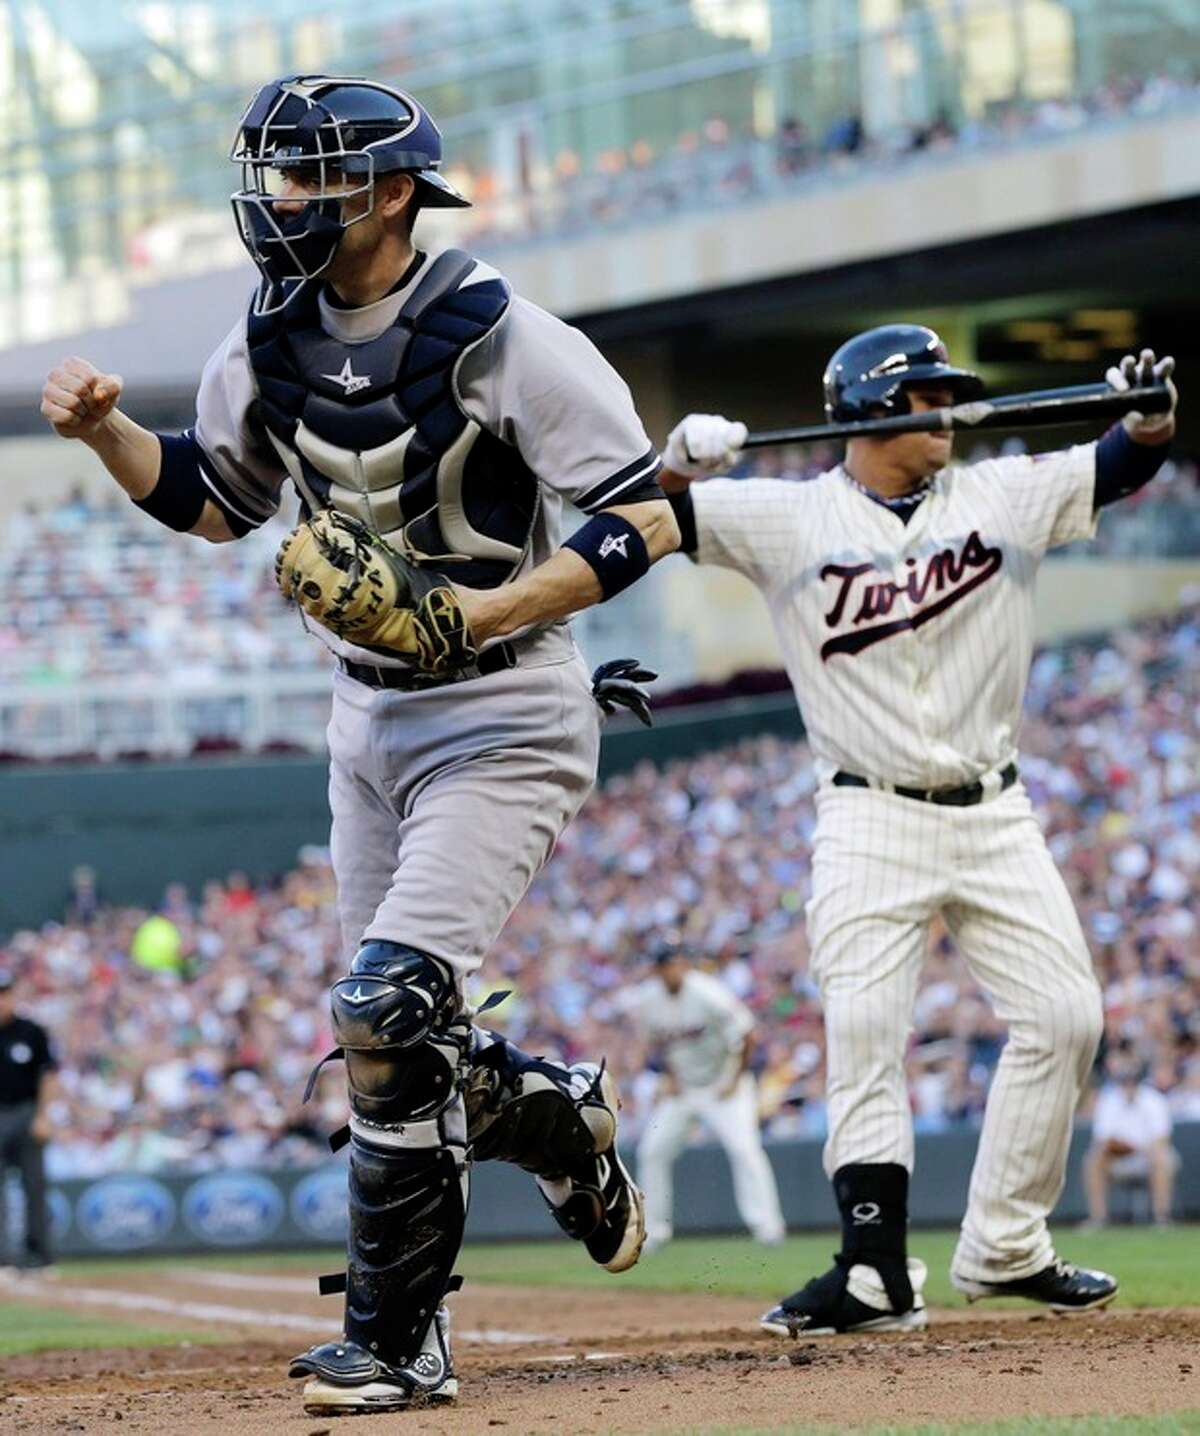 5New York Yankees catcher Chris Stewart, left, pumps his fist after Minnesota Twins' Oswaldo Arcia, right, struck out to CC Sabathia in the third inning of a baseball game on Wednesday, July 3, 2013, in Minneapolis. (AP Photo/Jim Mone)